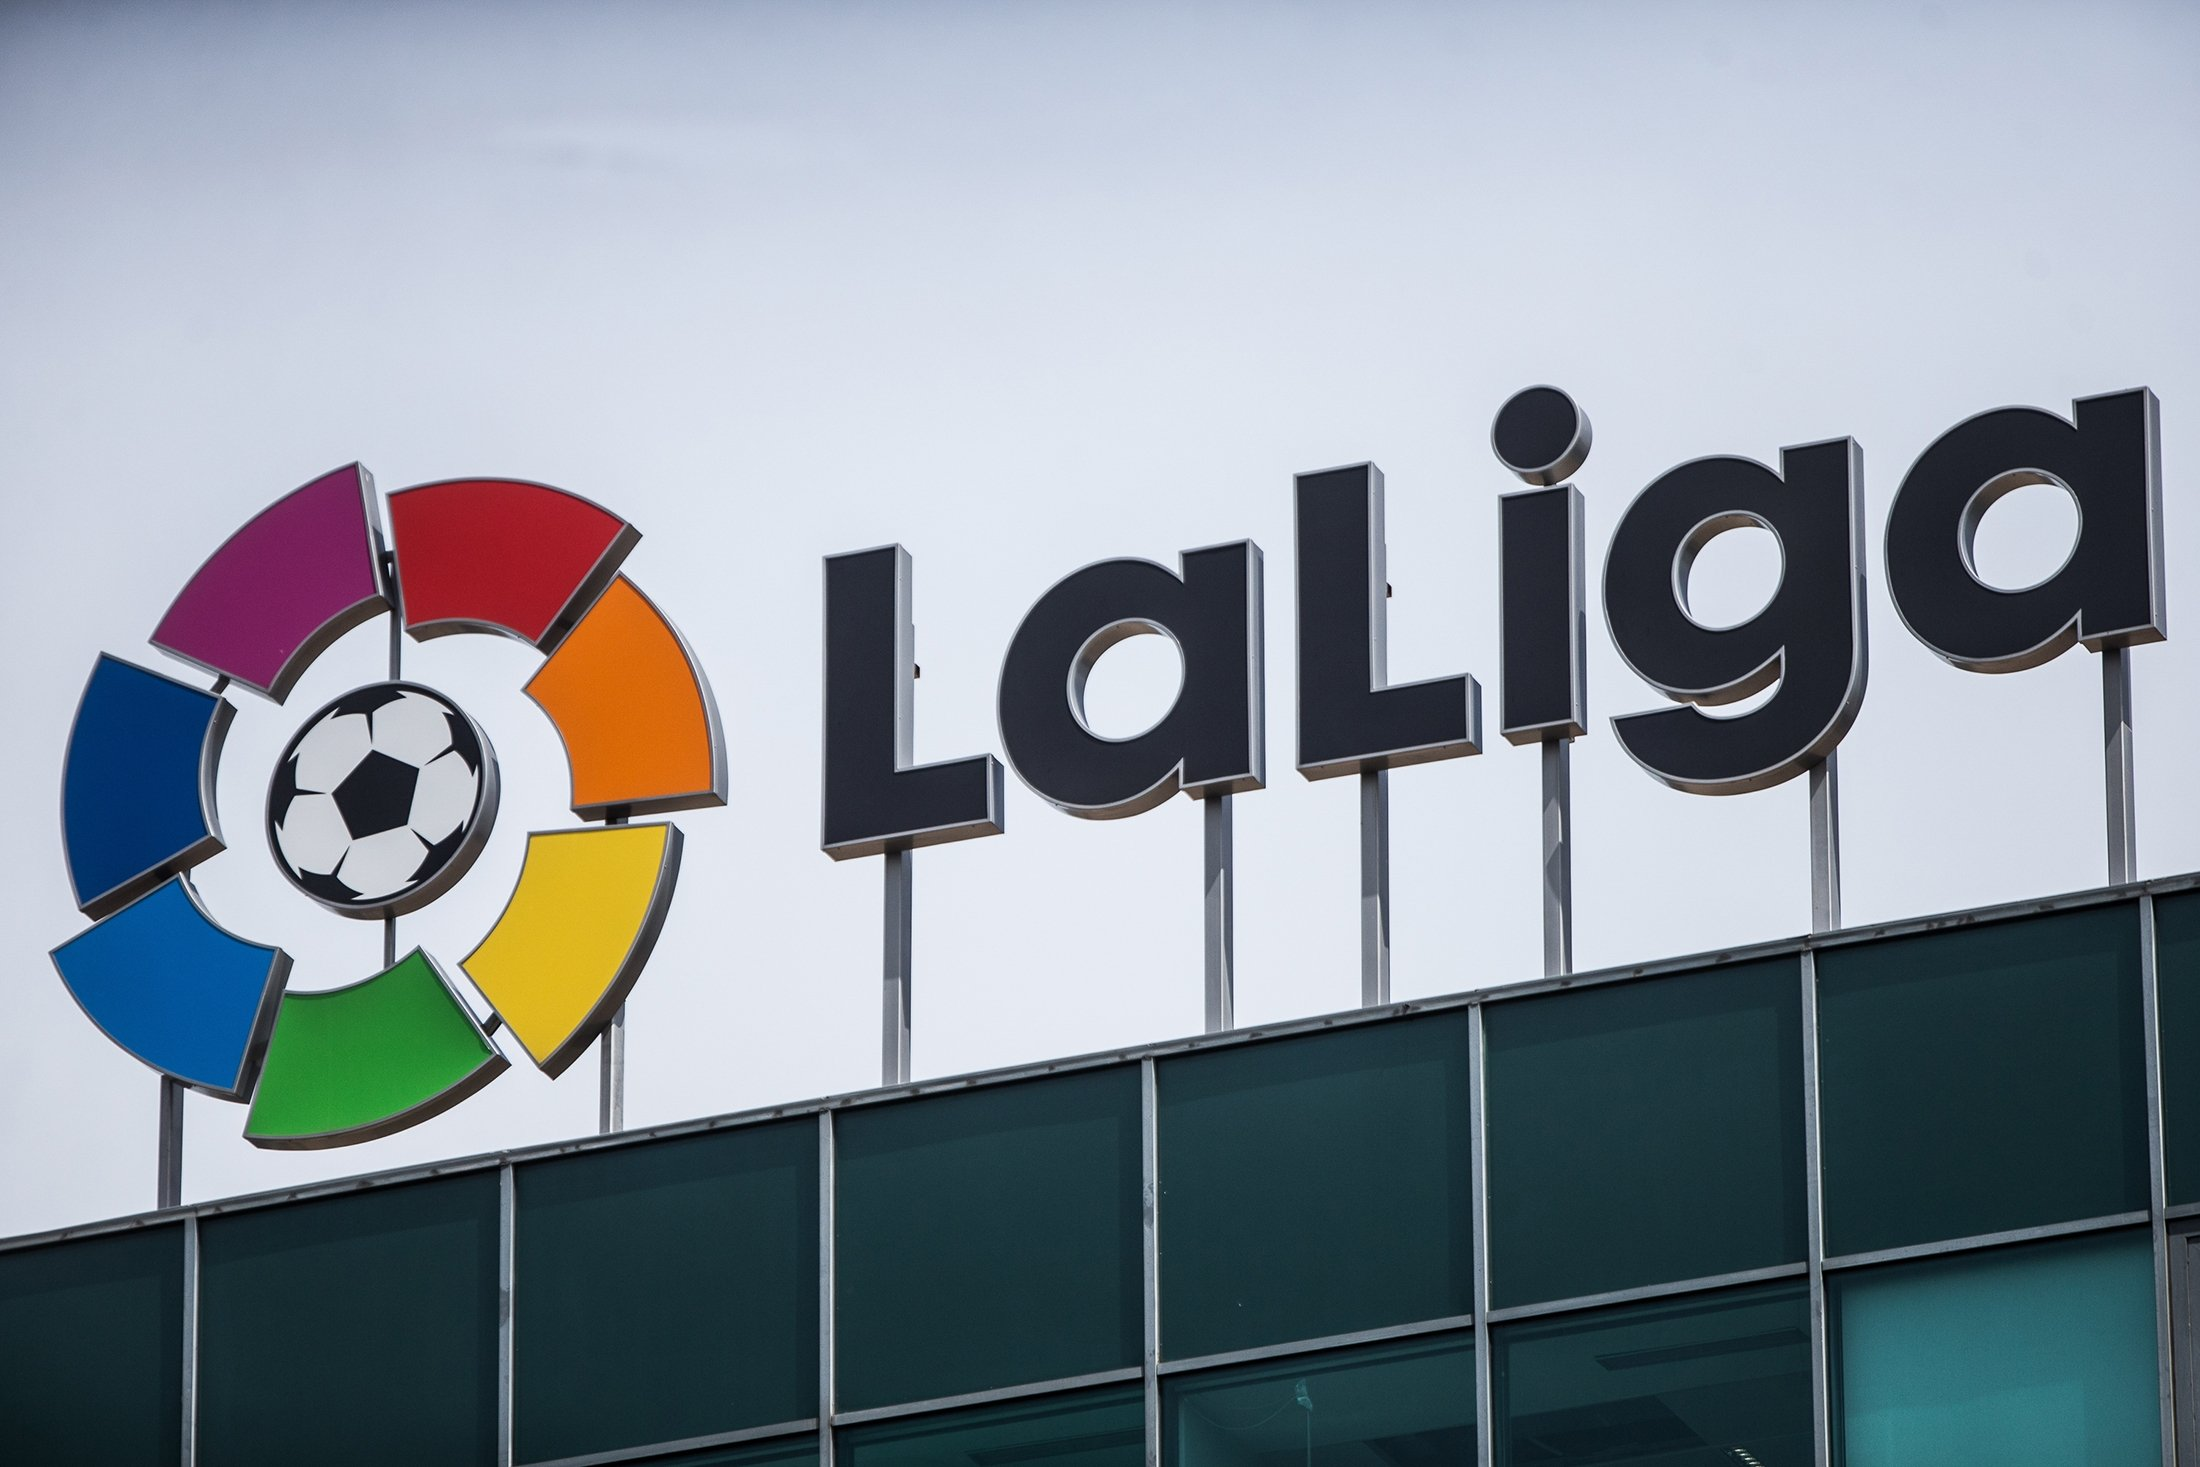 Spain's La Liga to sell 10% stake worth $3.2B to equity firm CVC | Daily  Sabah